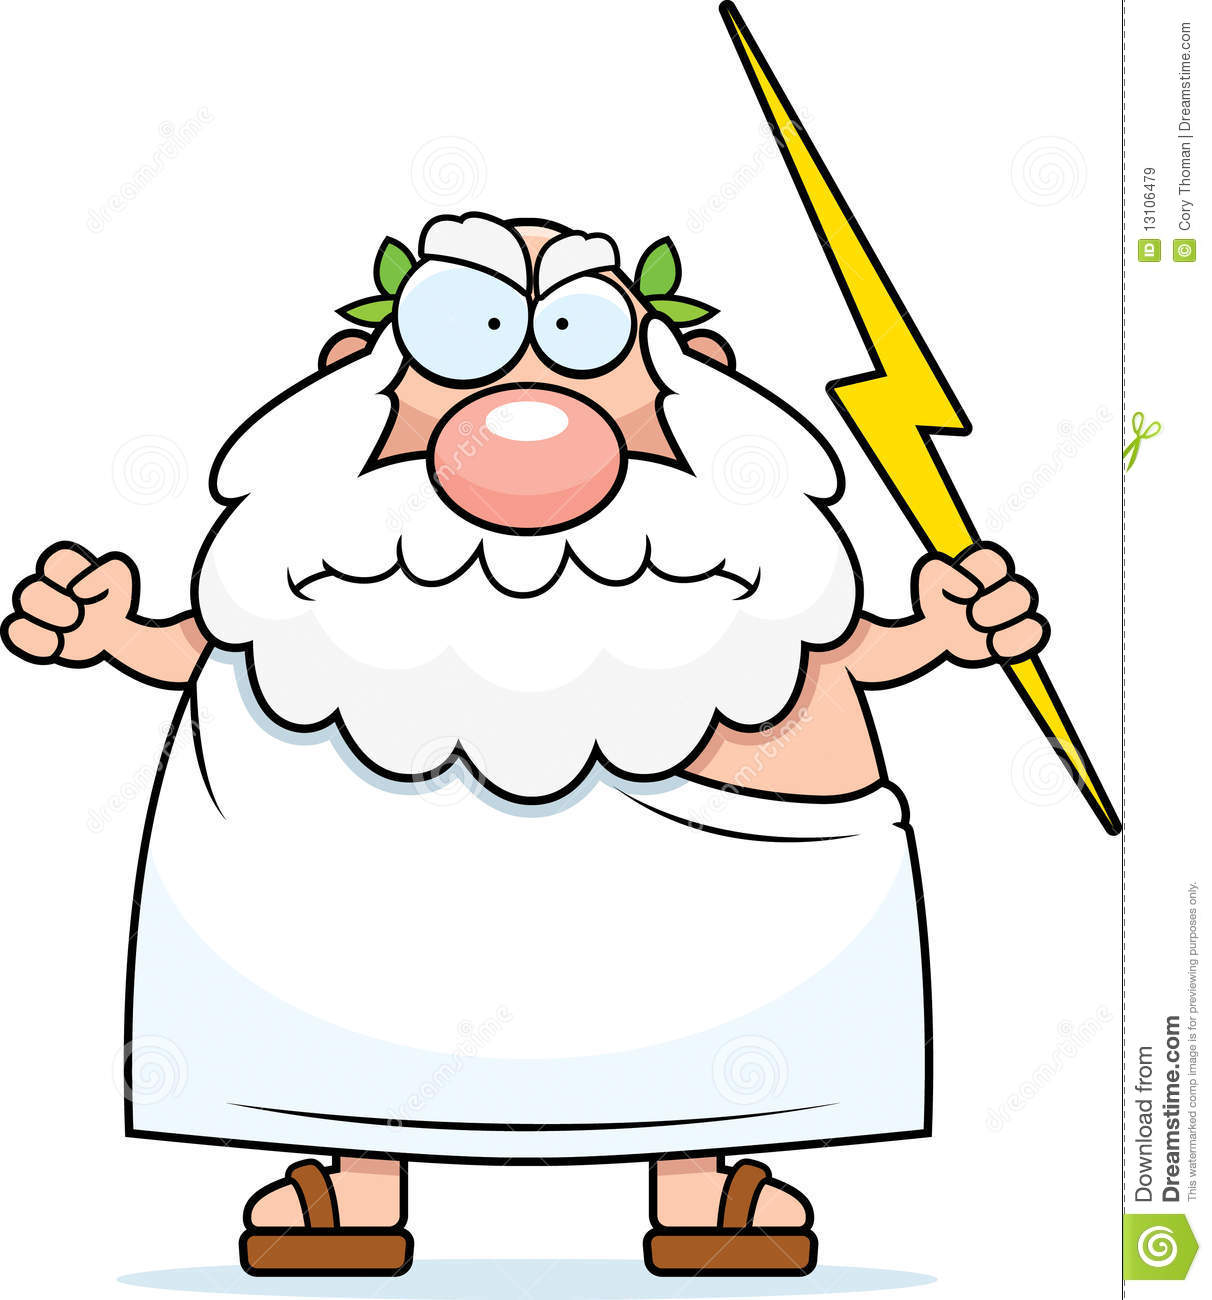 picture free Zeus clipart cute. Free download best on.